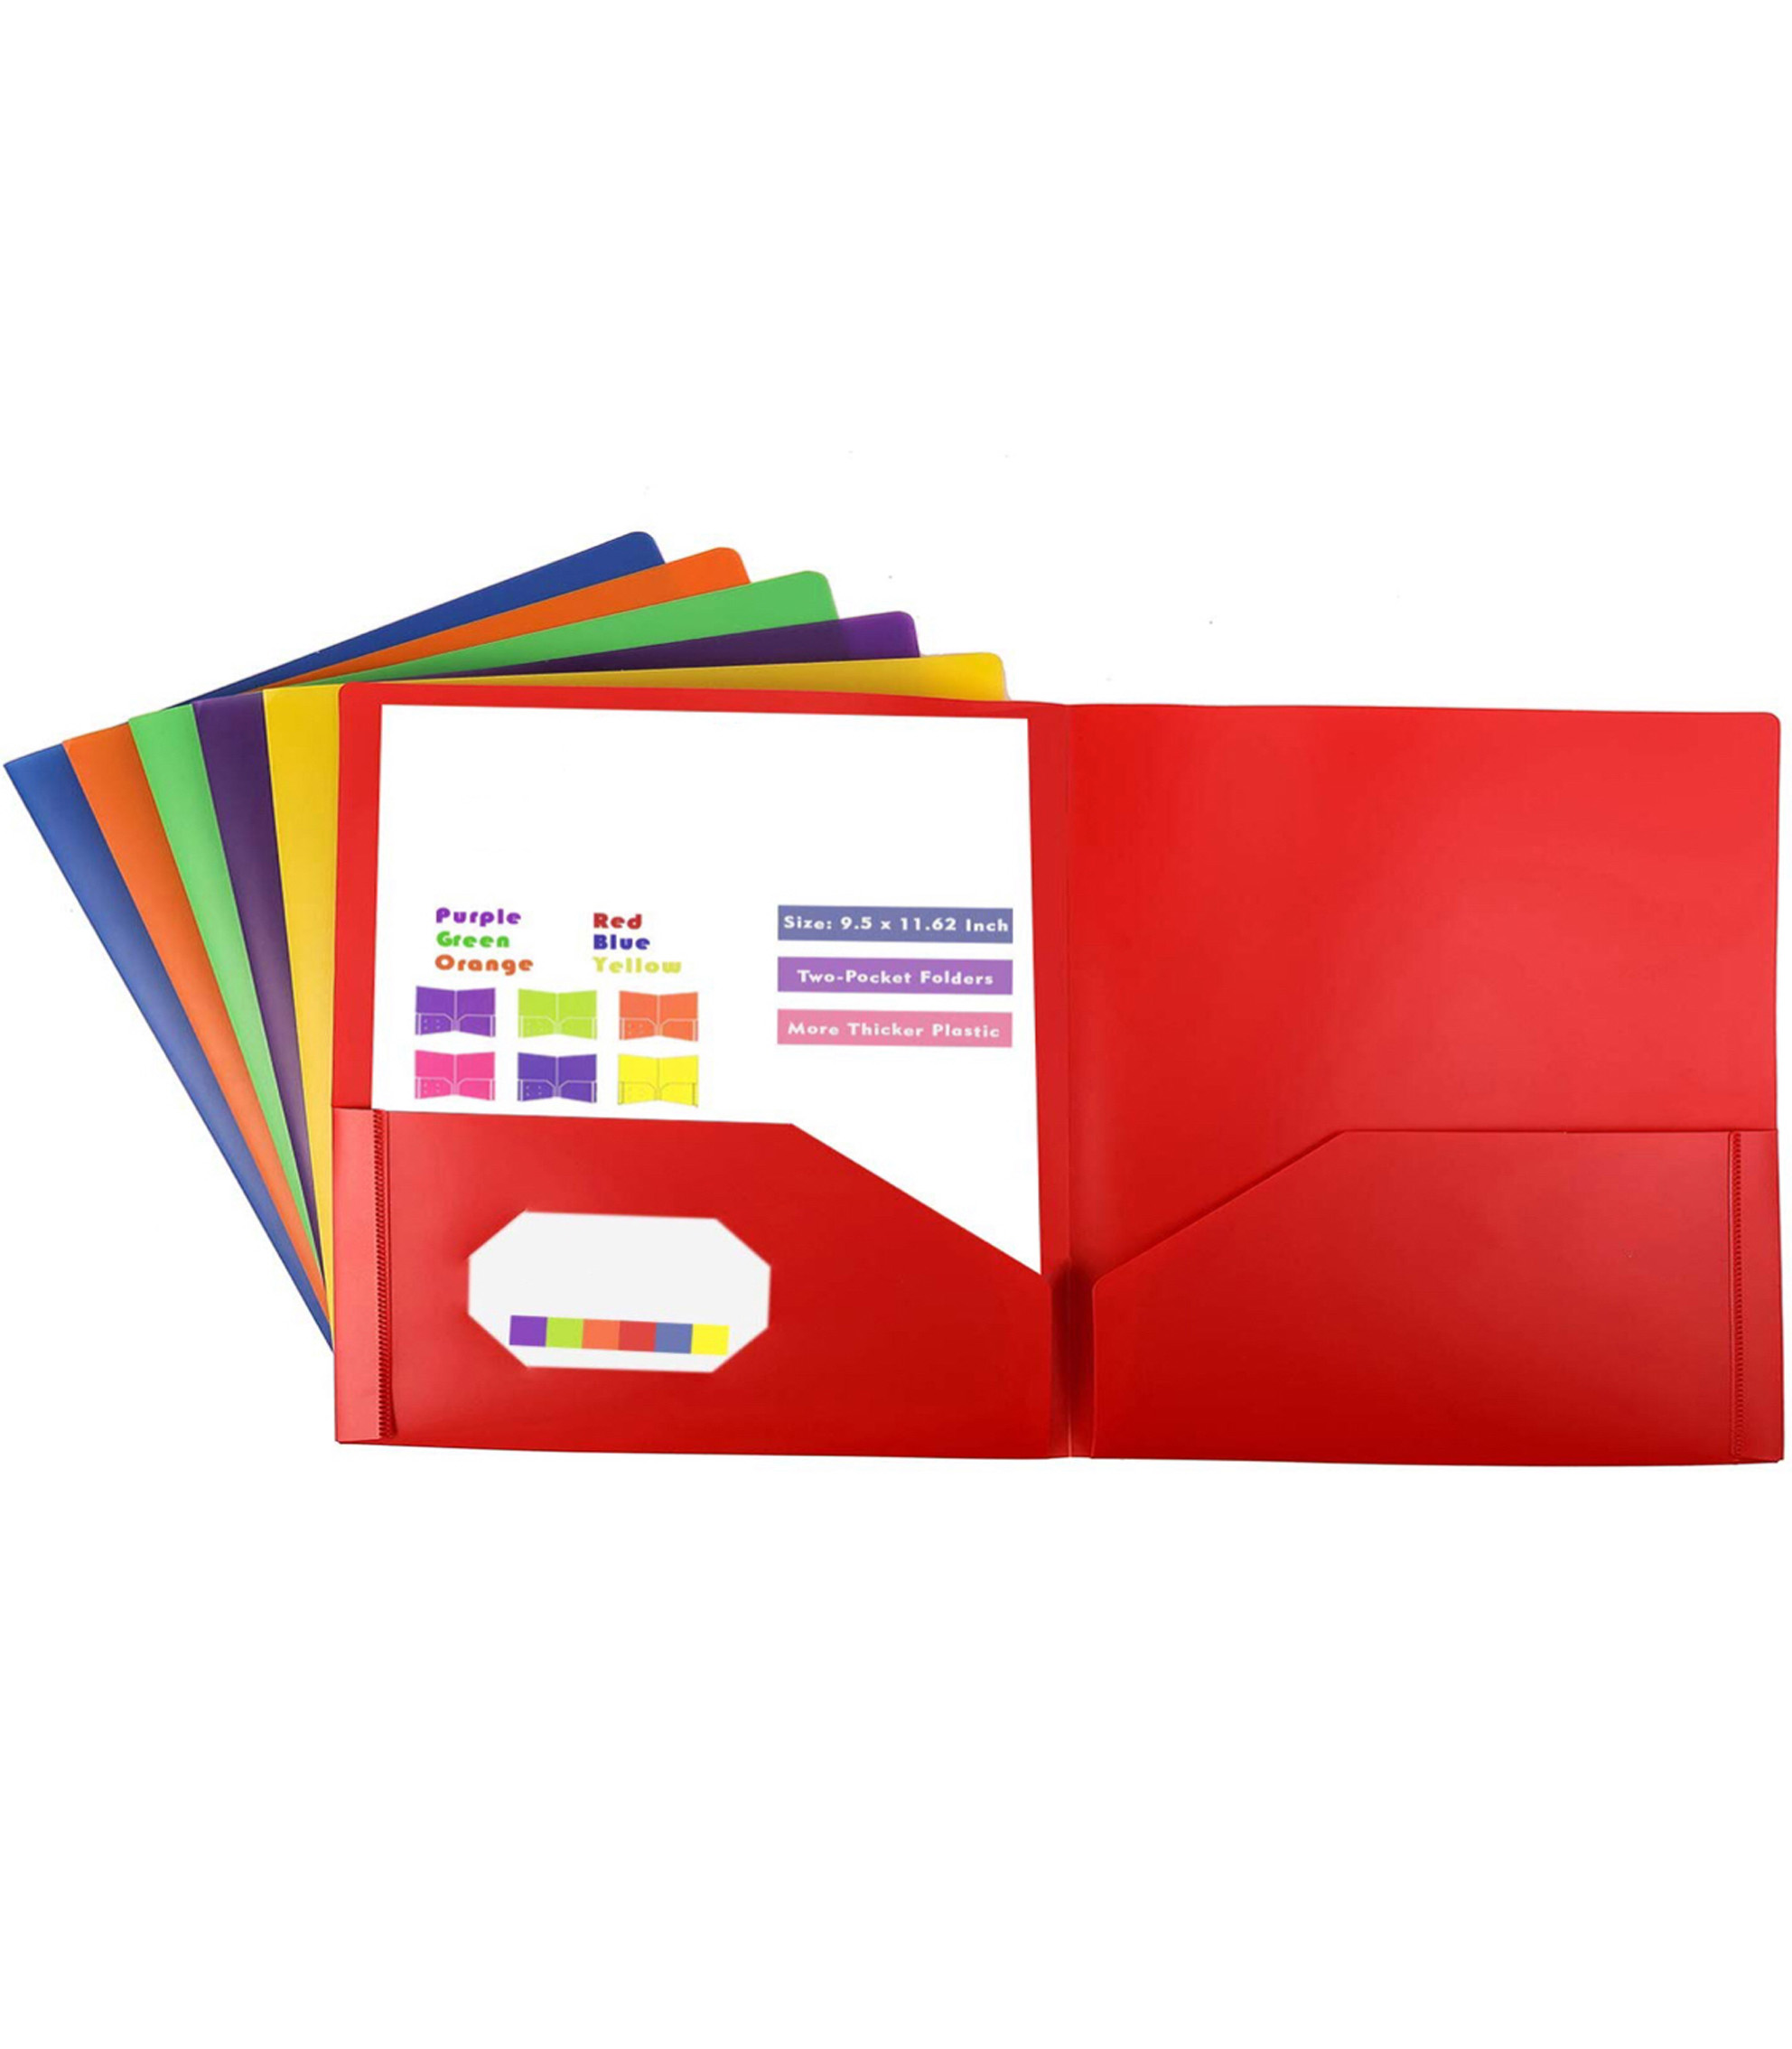 A4 Plastic Document Wallets Folder Files Assorted Colors Home Office School